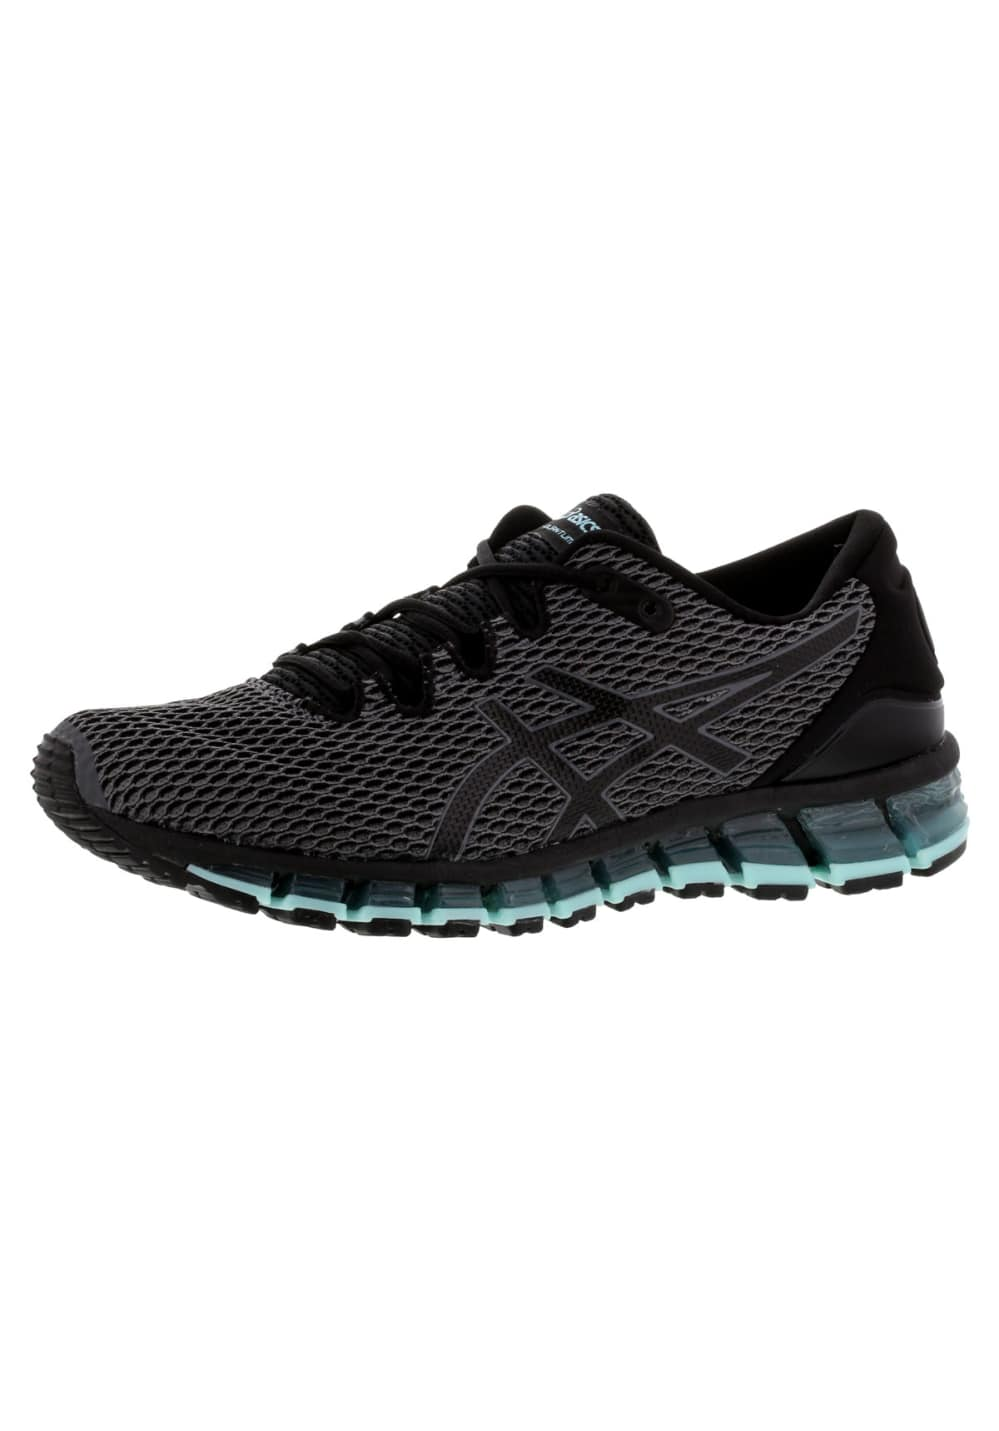 13bd831dff1e7 ASICS GEL-Quantum 360 Shift MX - Running shoes for Women - Black | 21RUN